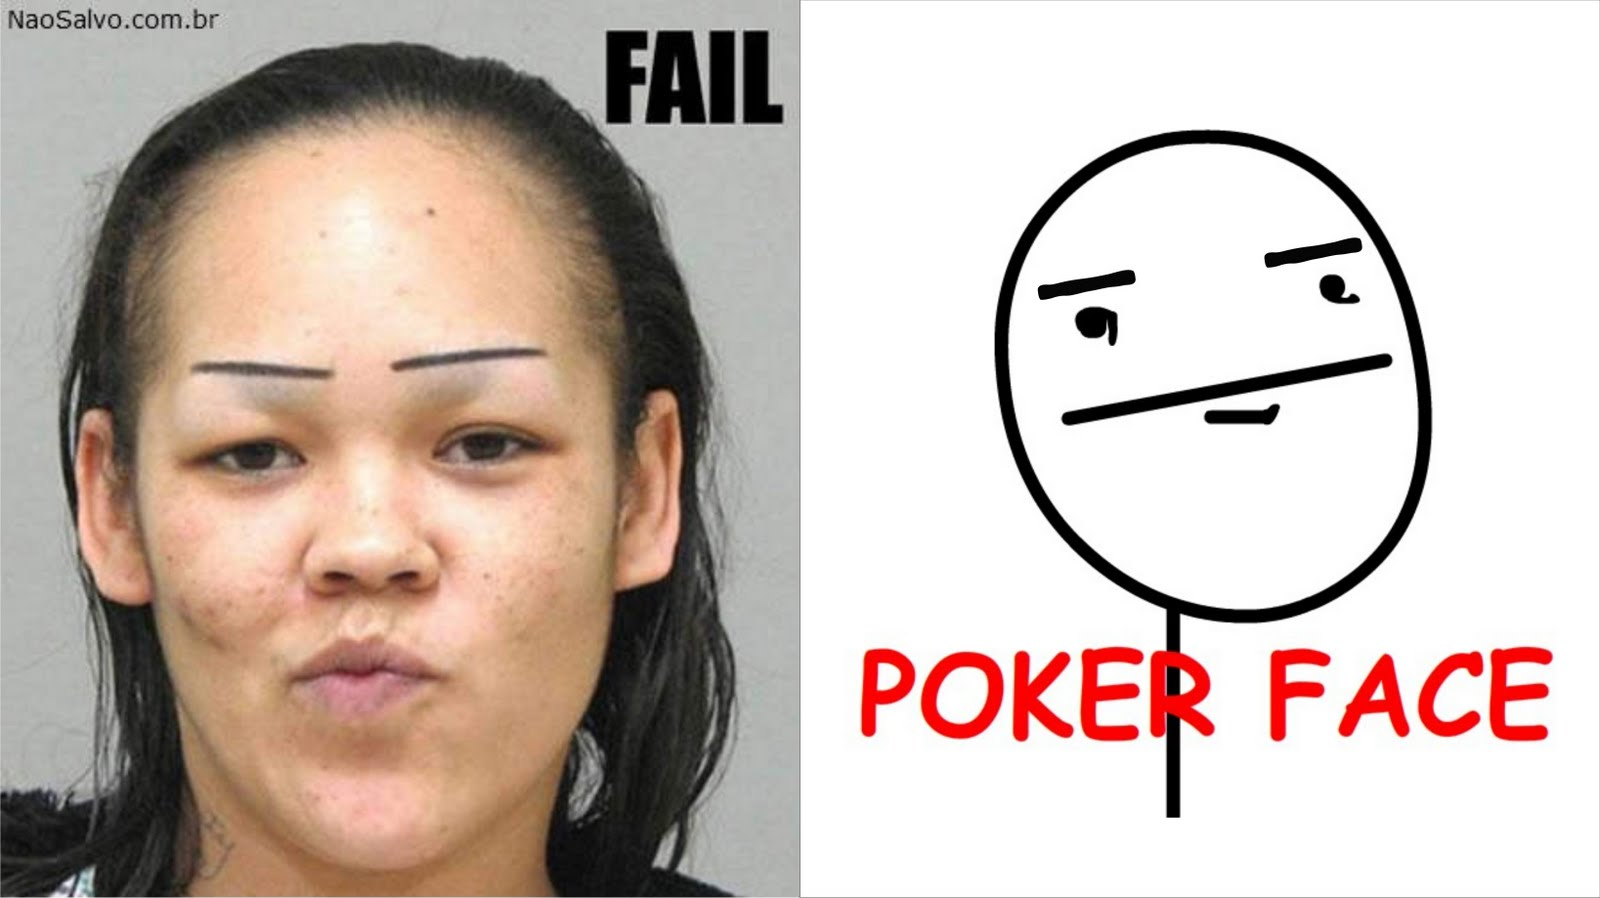 real poker face